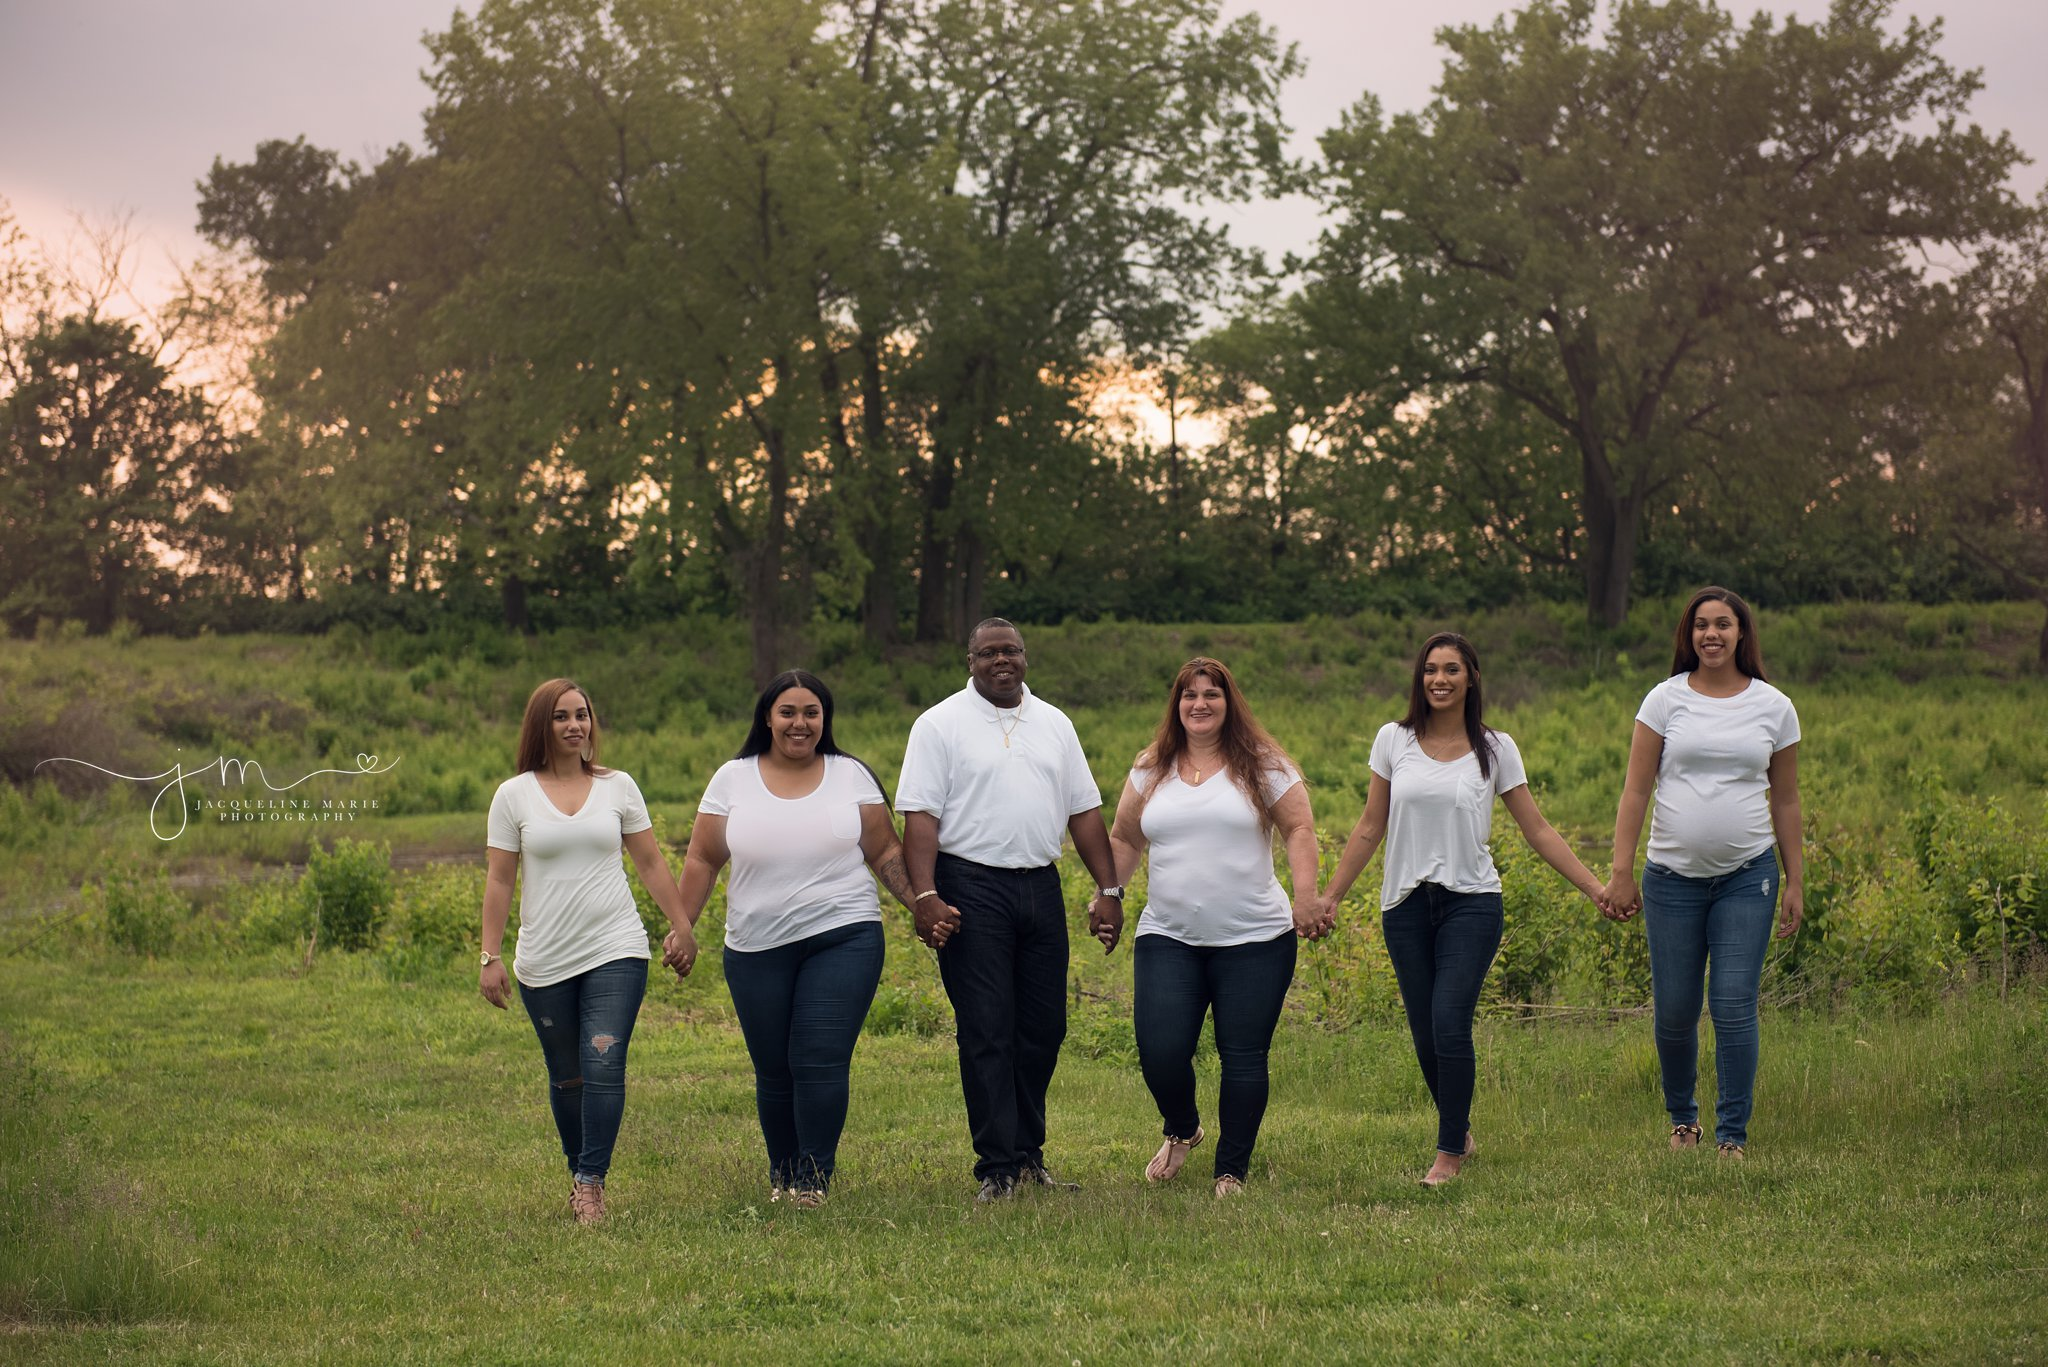 columbus ohio family photographer features images of mother and father walking with four daughters